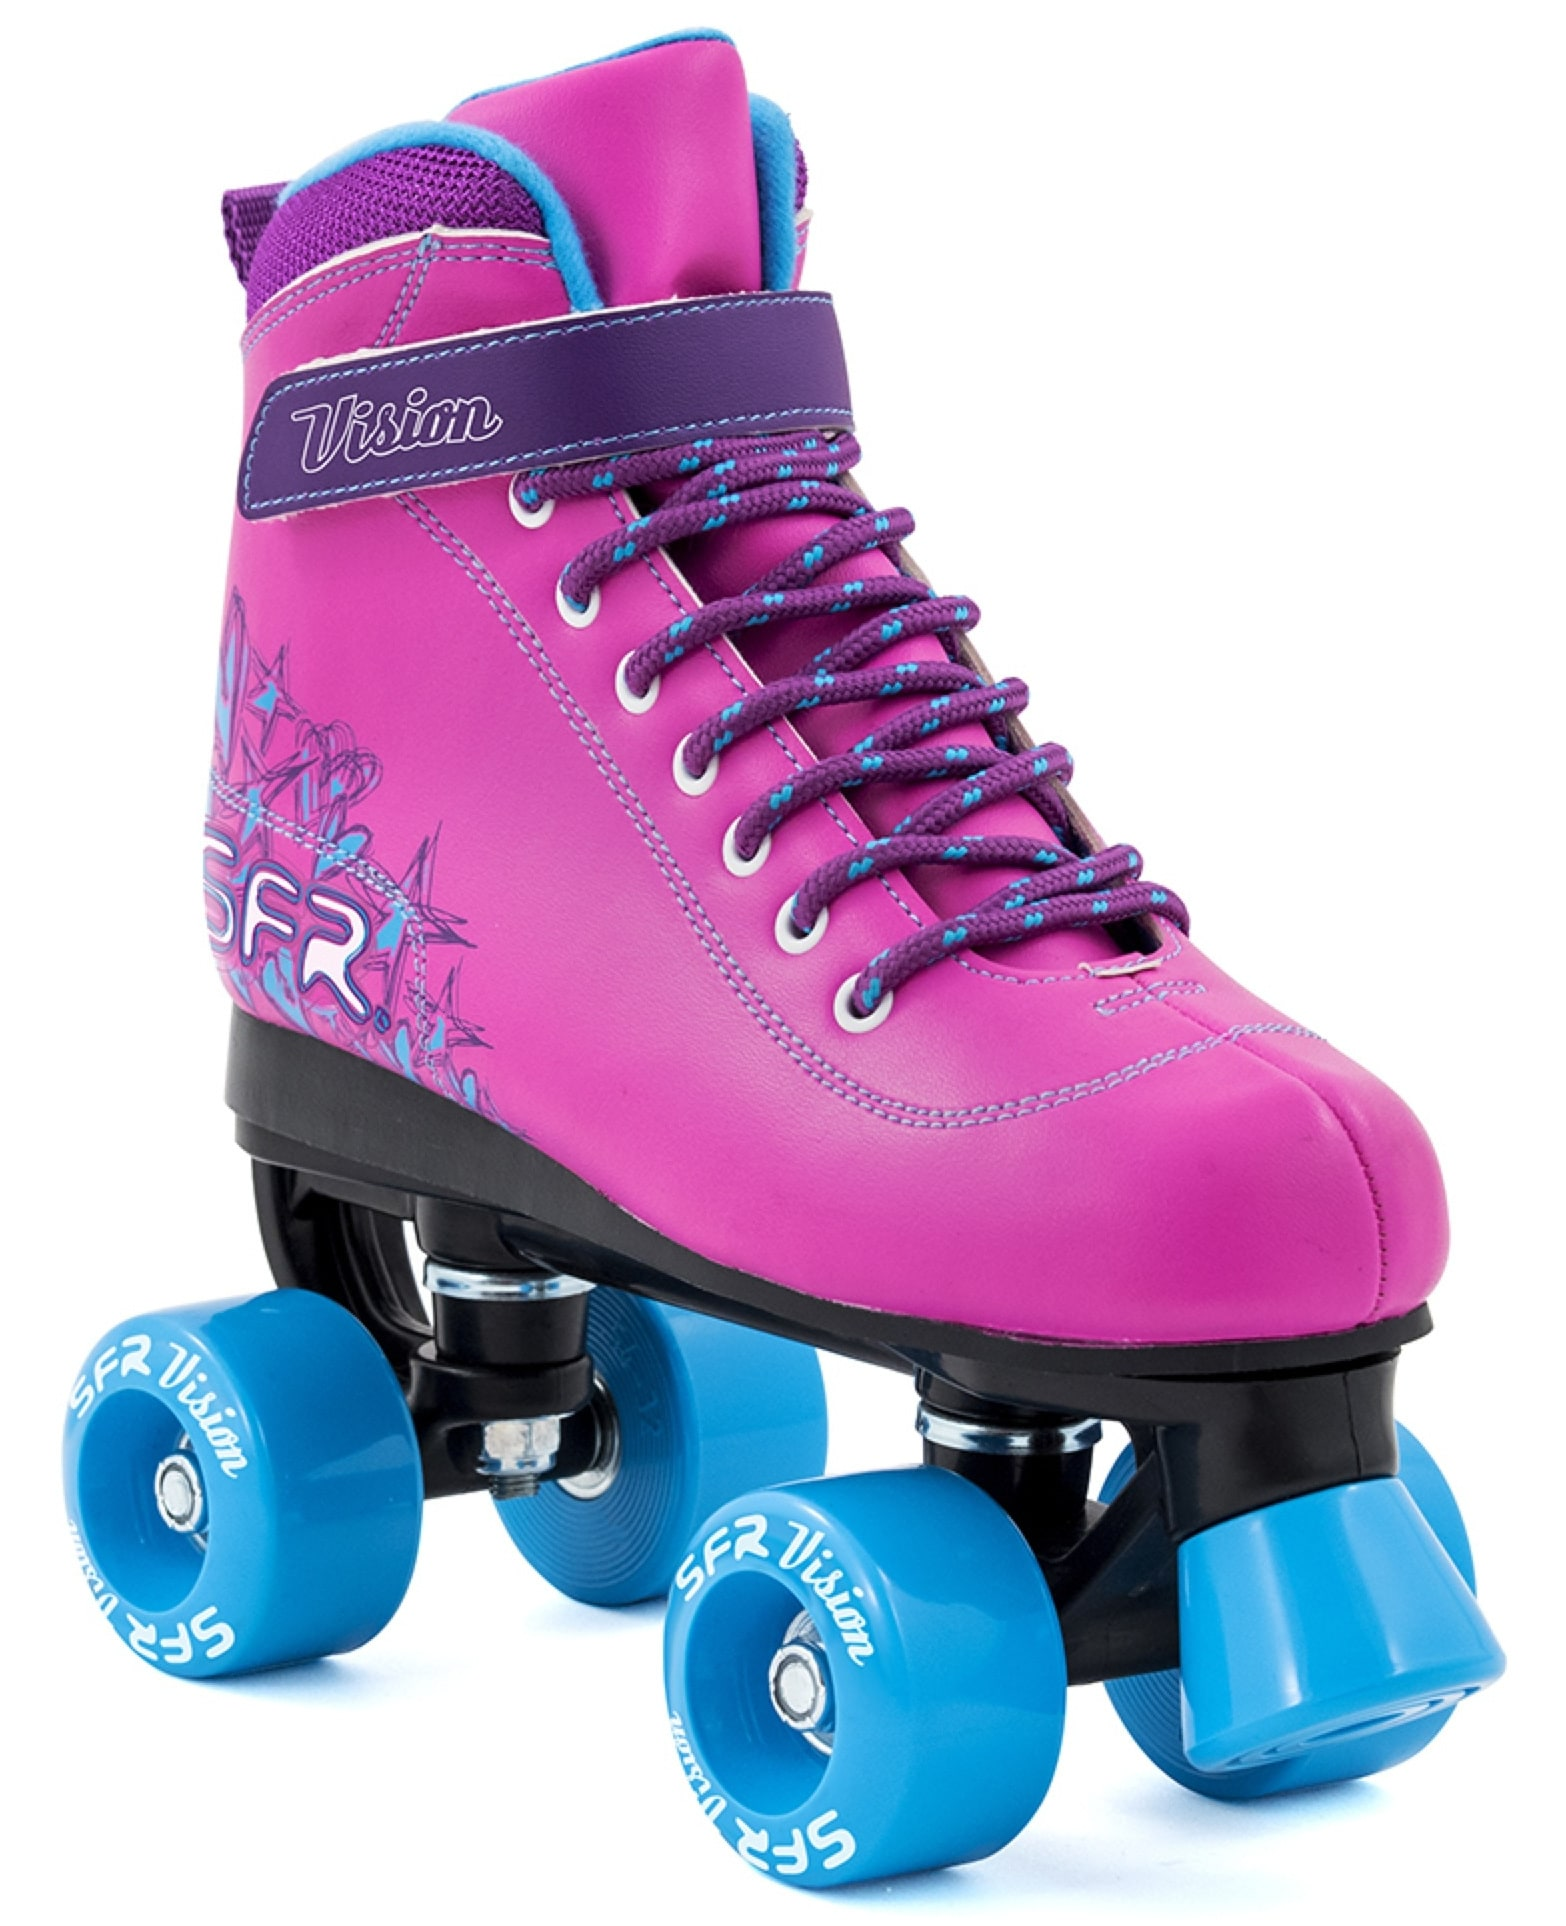 sfr vision ii quad roller skates pink blue sfr protection sfr pads sfr helmets inline. Black Bedroom Furniture Sets. Home Design Ideas